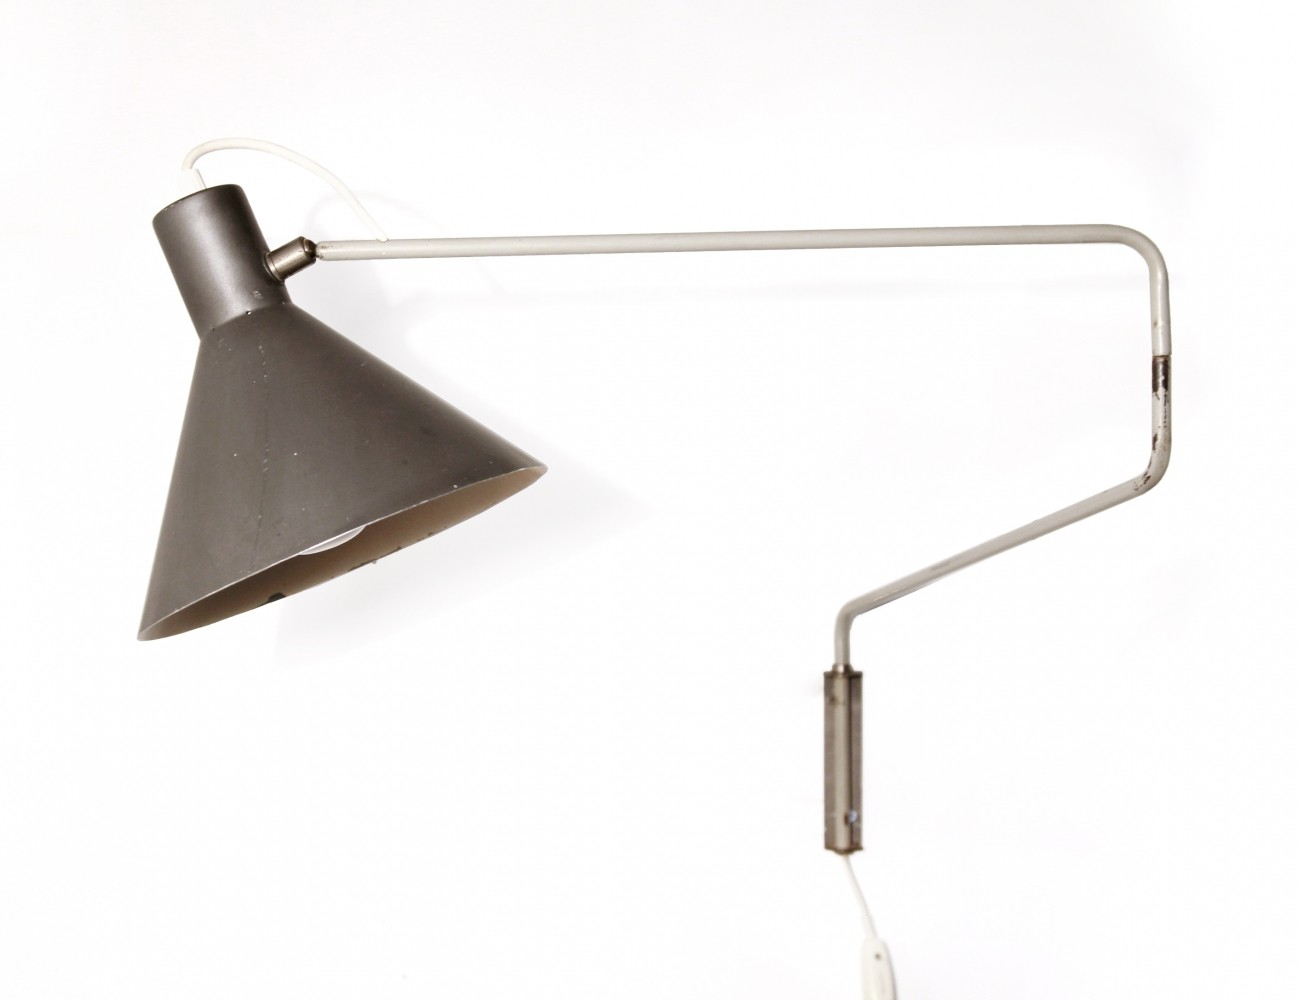 Model 7058 wall lamp by J. Hoogervorst for Anvia Almelo, 1950s